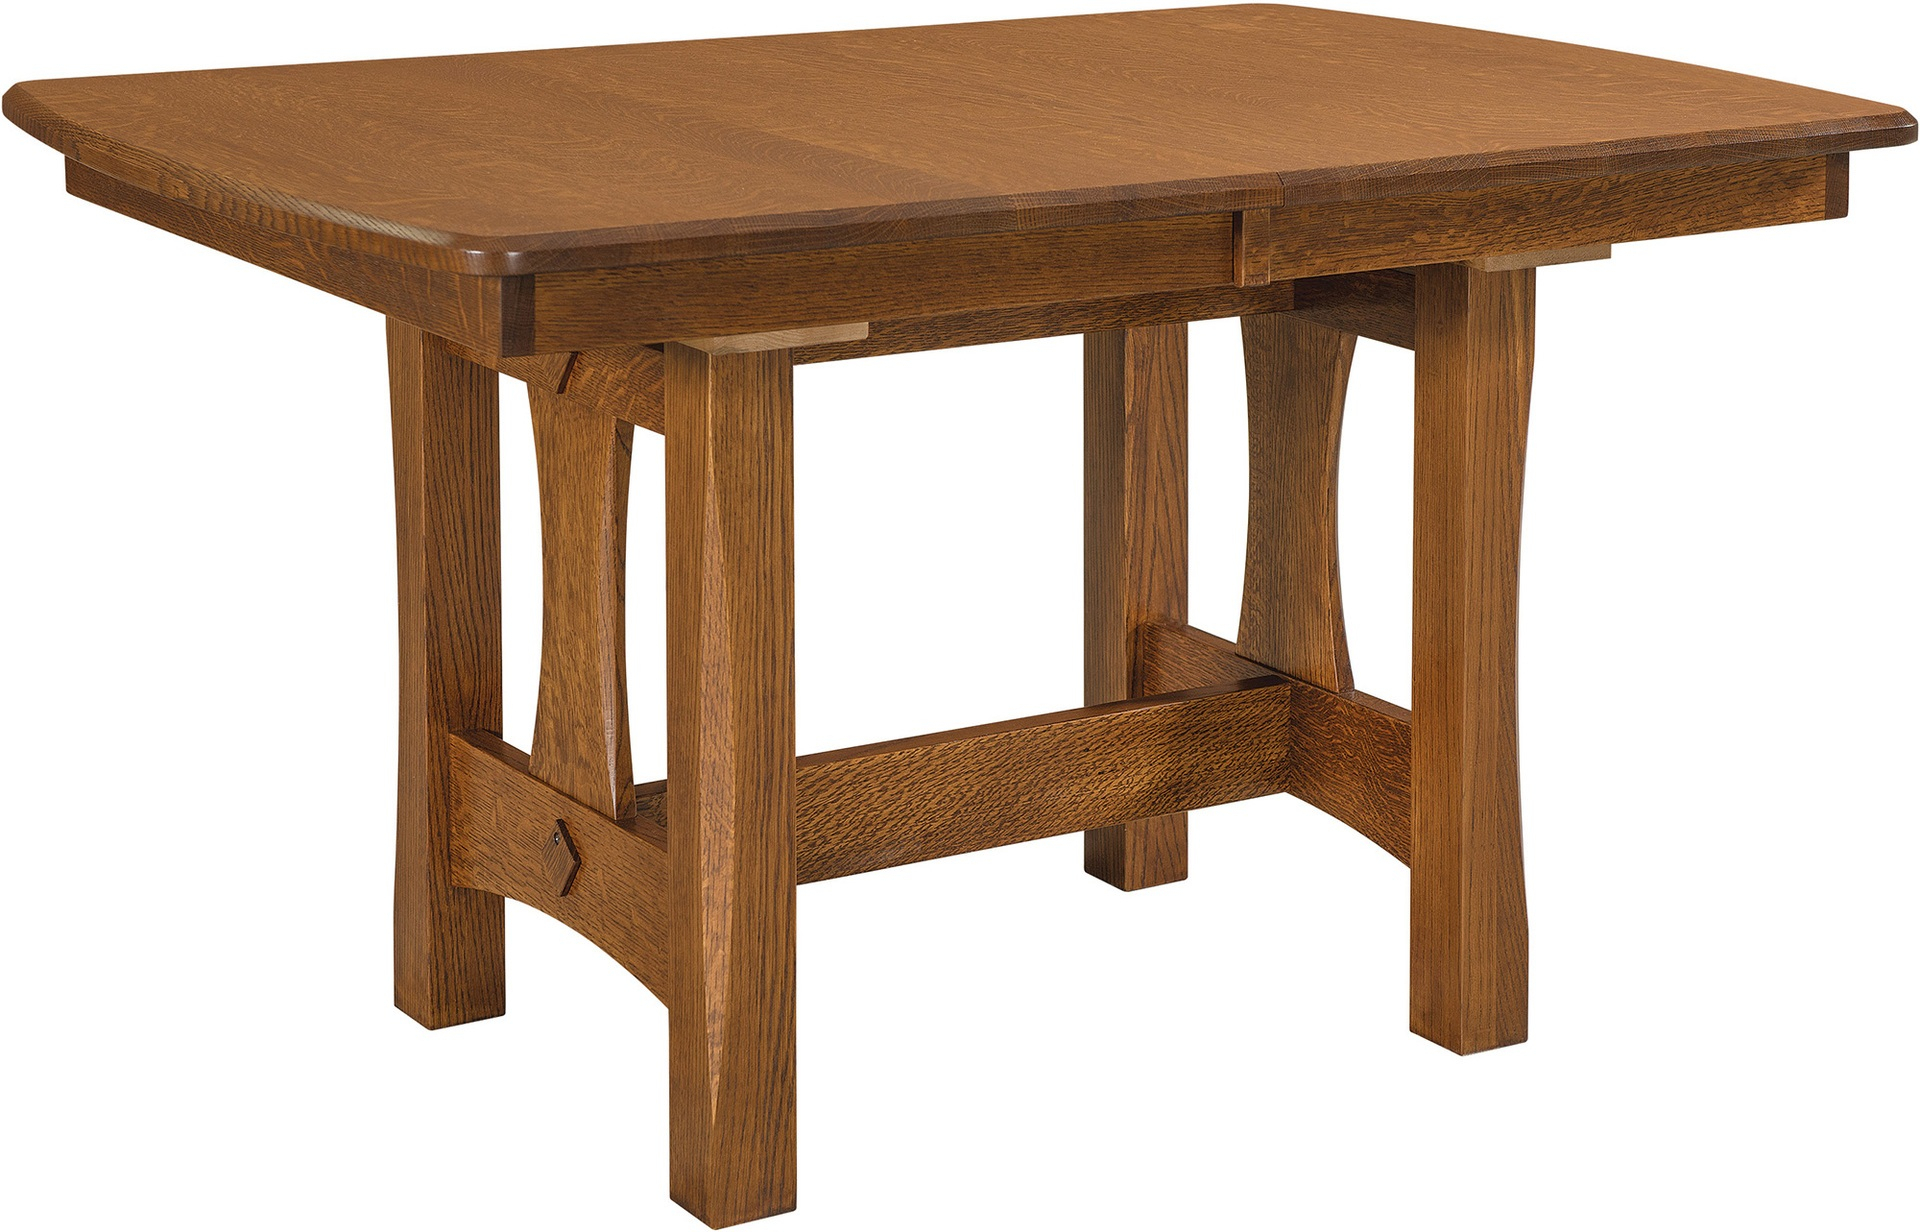 Trestle Tables   Trestle Dining Tables – Brandenberry Regarding Latest Trestle Dining Tables (View 6 of 15)